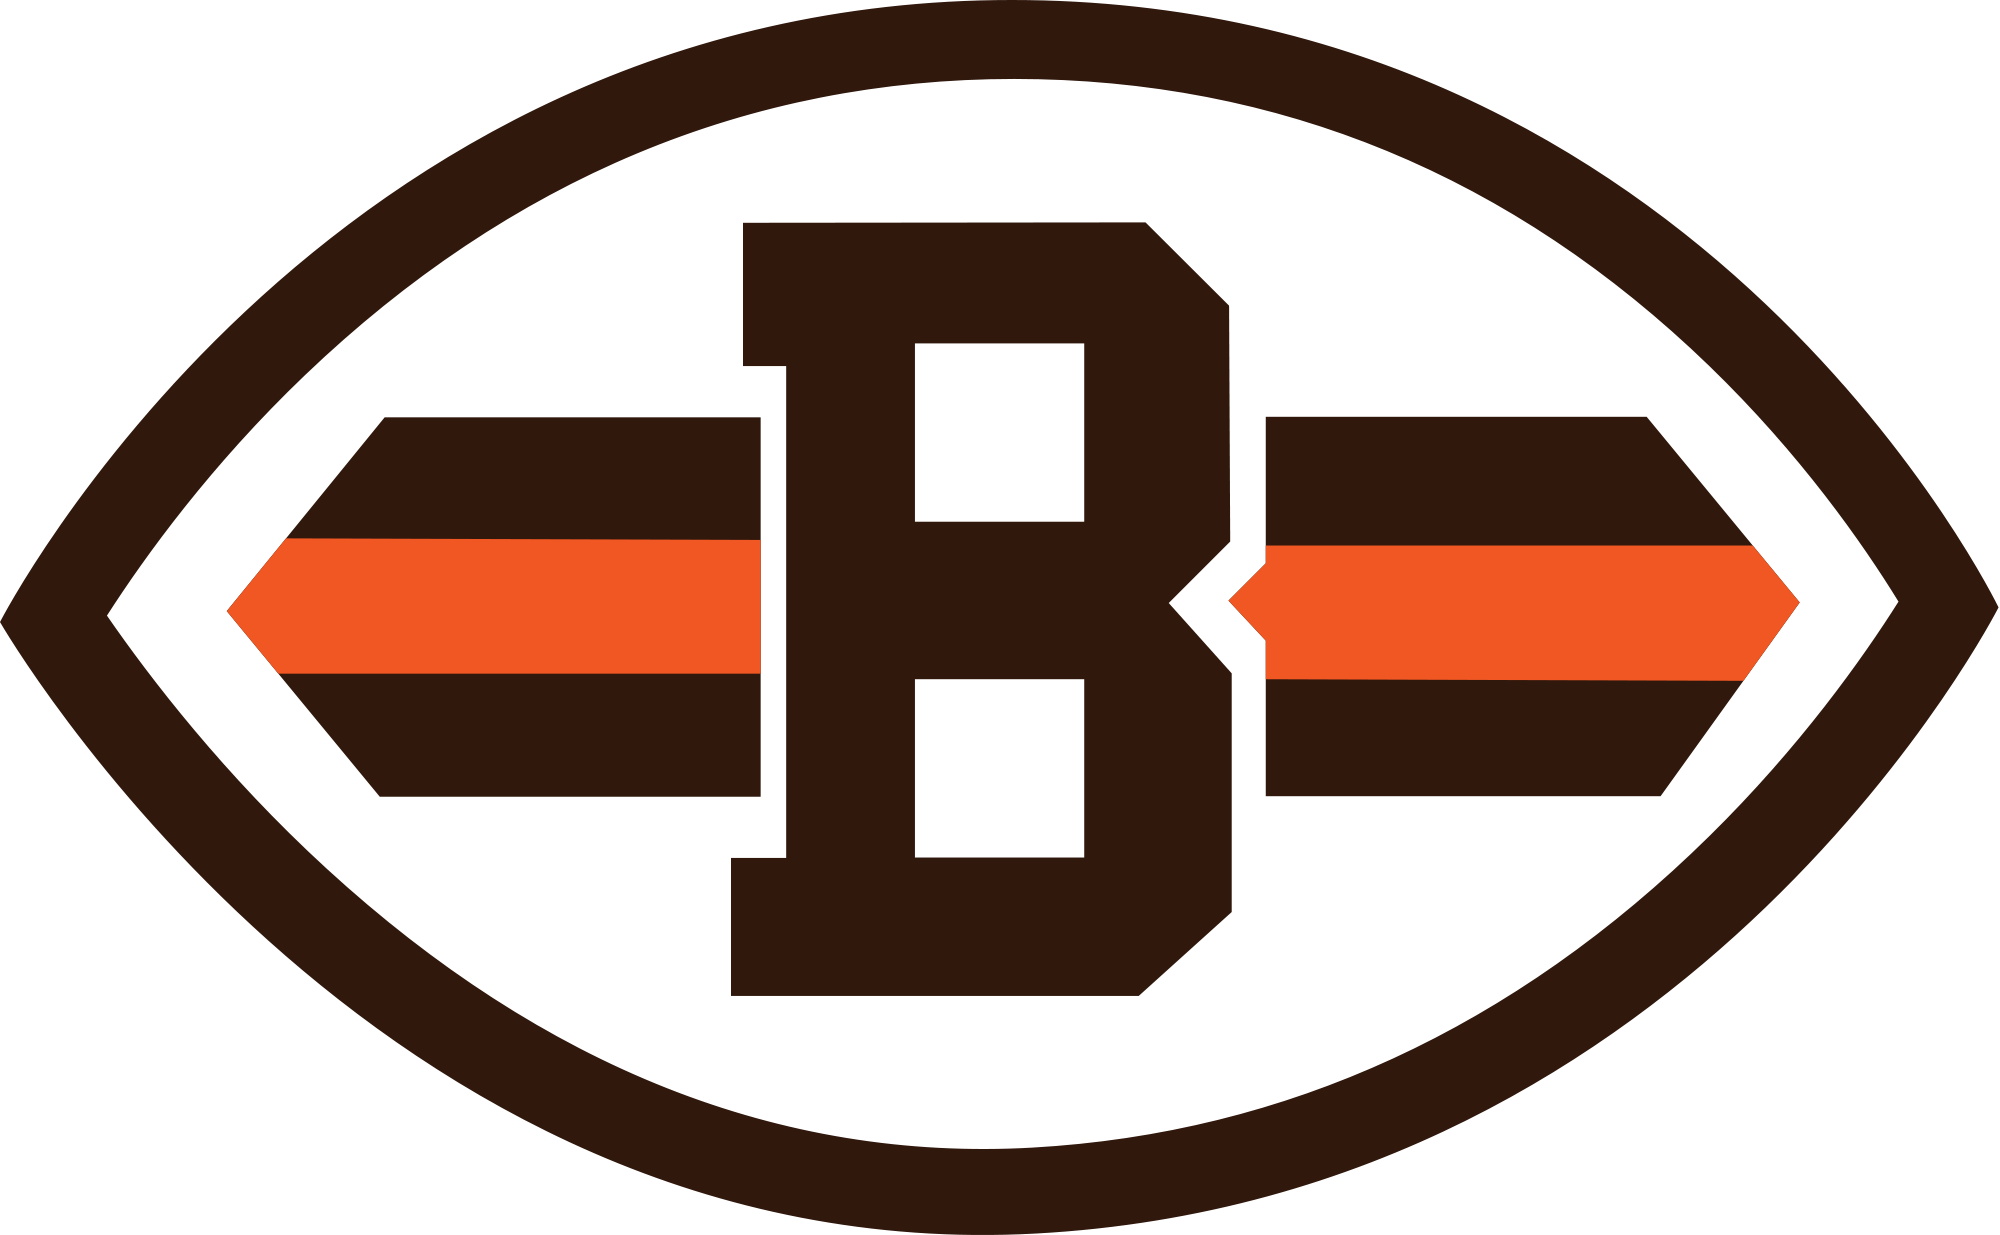 2000x1235 Cleveland Browns Logo Transparent Png